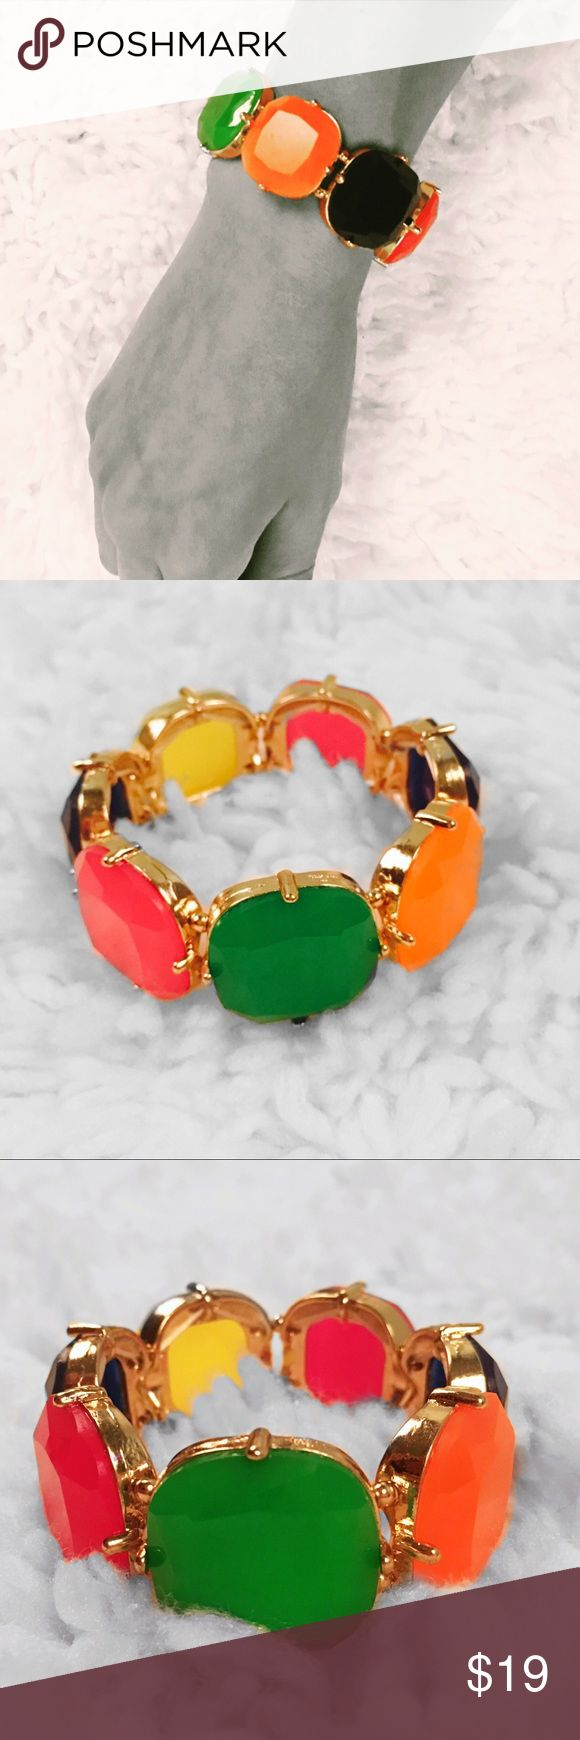 "Neon Multicolor Gold Stretch Bangle Neon colors pink, orange, green, and purple in gold colored alloy setting.  Connected using elastic for  stretch to fit most wrist sizes.  1"" Height. Farah Jewelry Jewelry Bracelets"